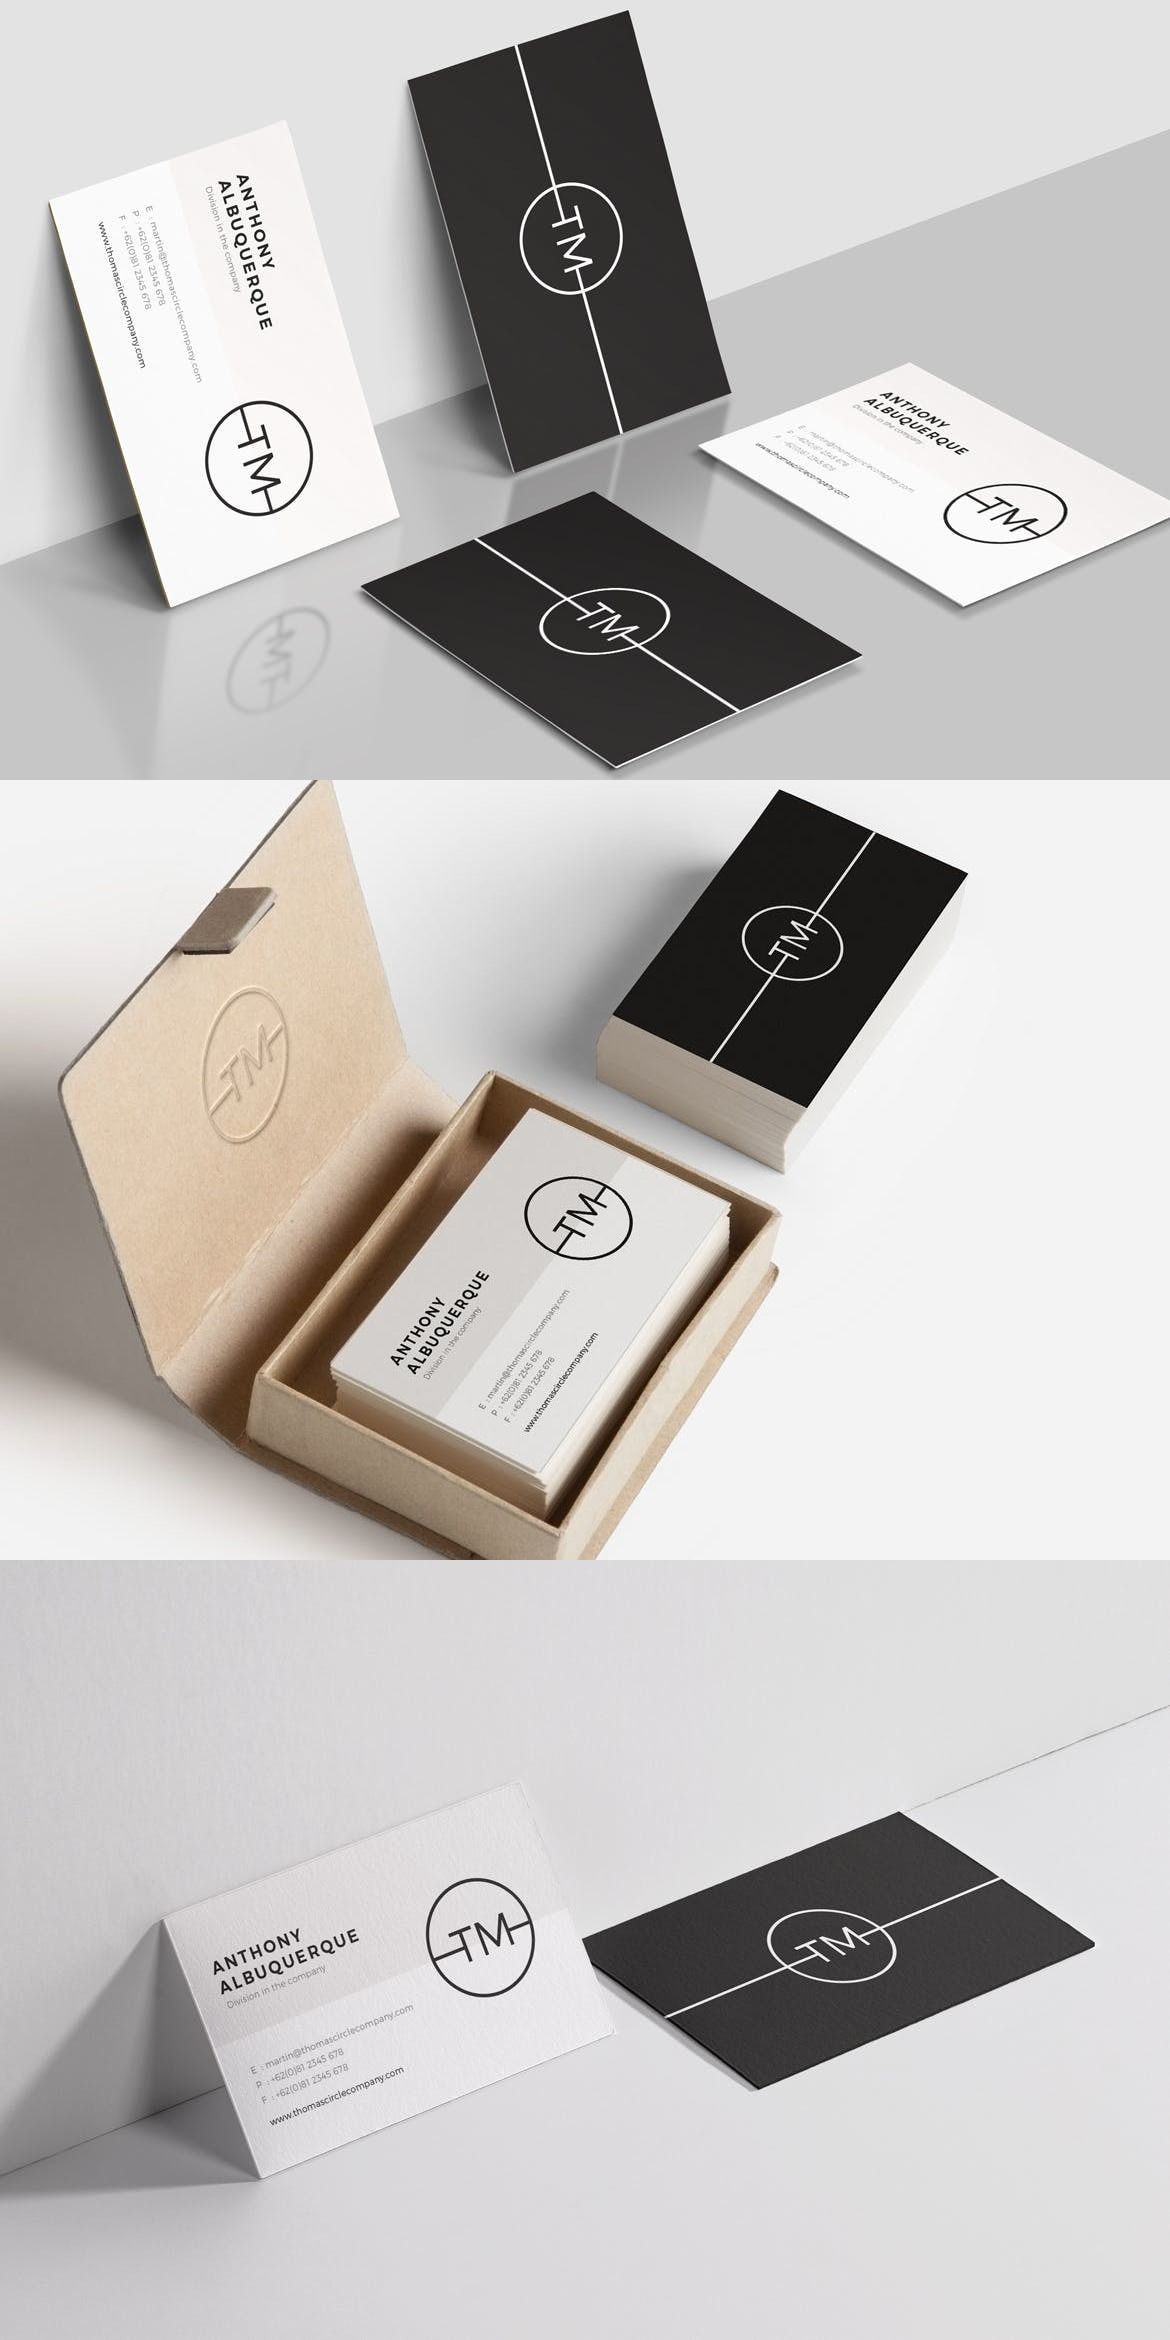 Minimal Business Card Adobe InDesign Agency Office